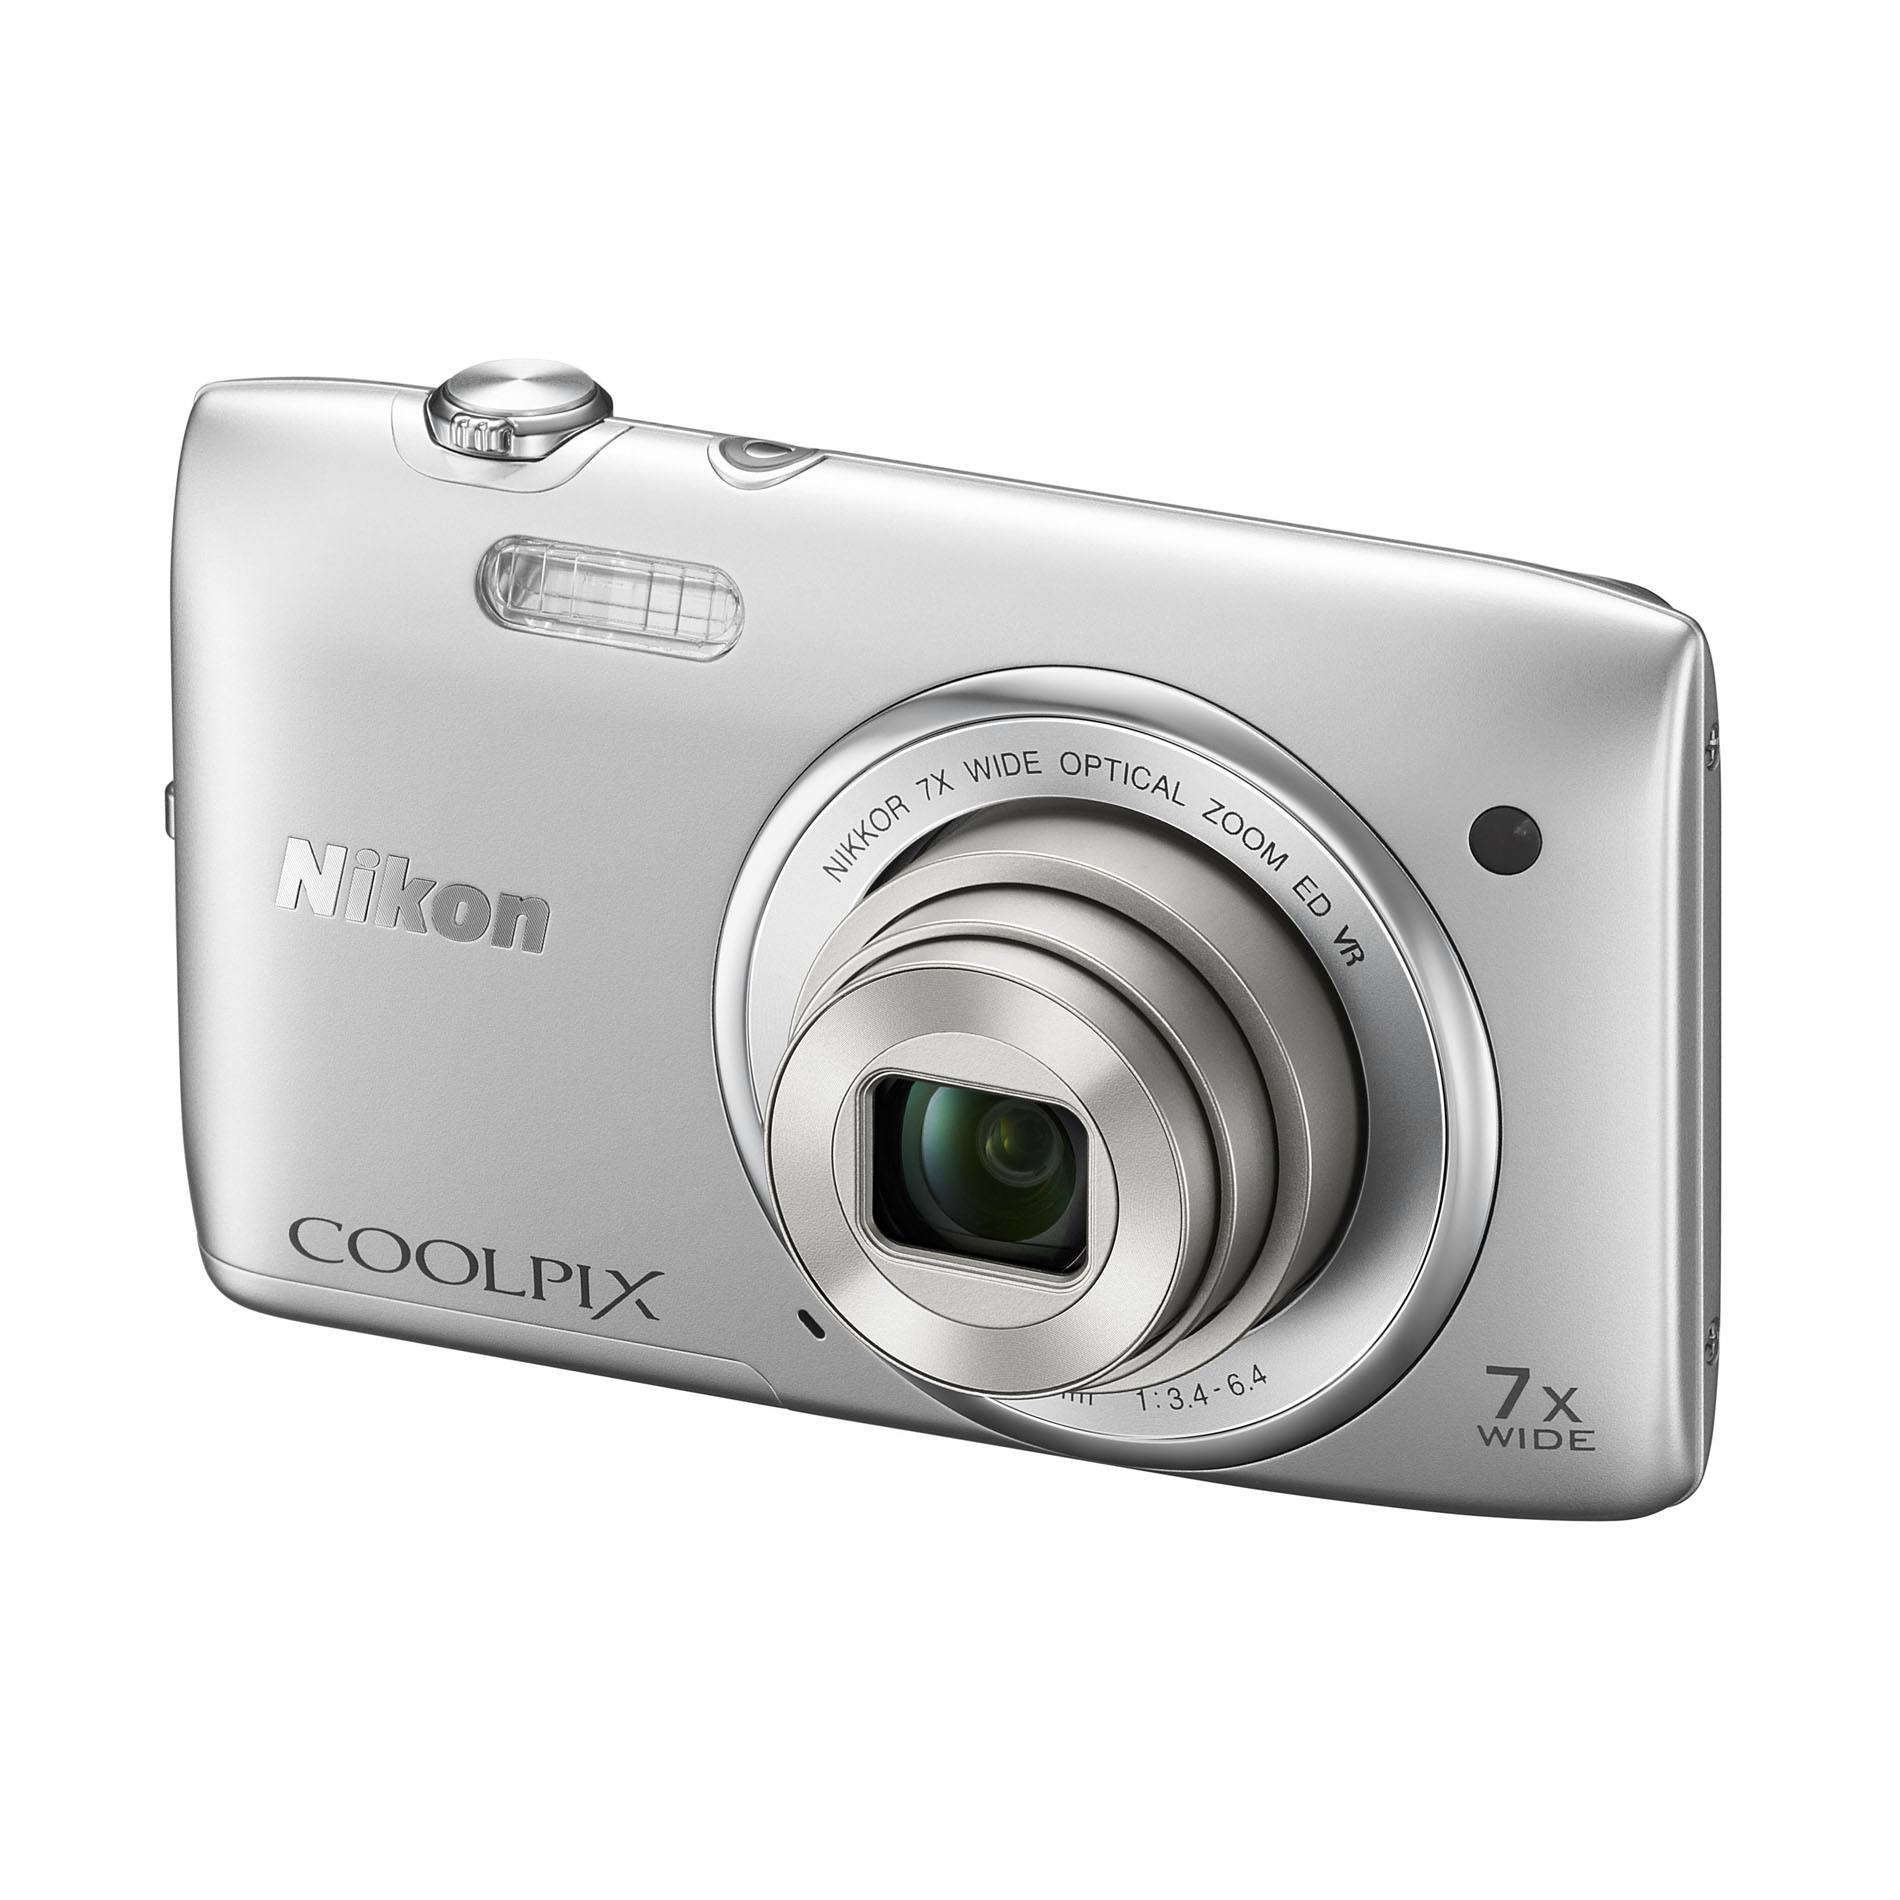 Nikon COOLPIX 20.1MP Digital Camera S3500 Silver